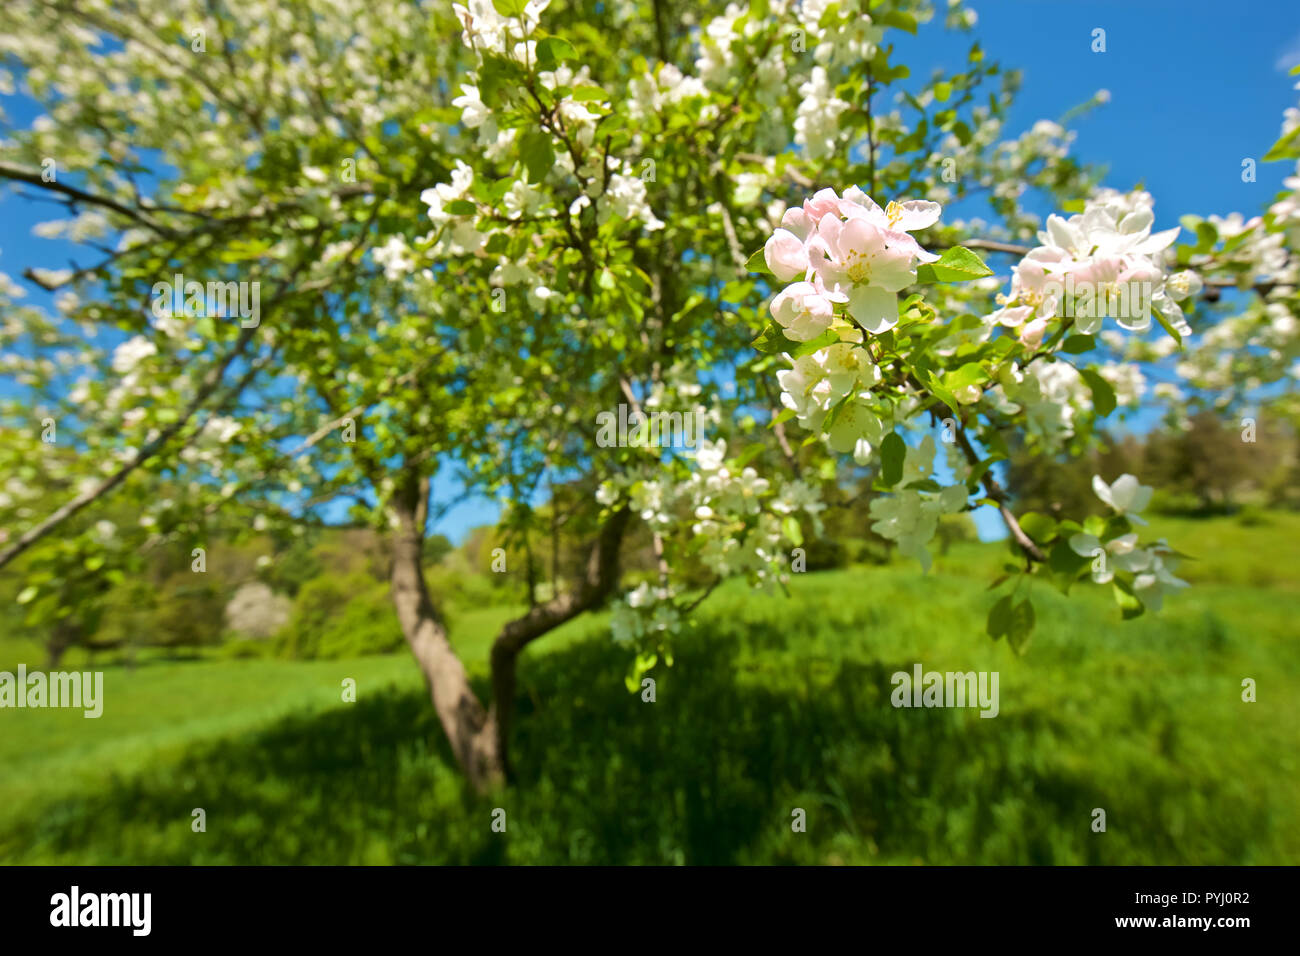 Close focus of apple blossom and tree with soft bokeh on surrounding trees, taken in spring in Ct, New England - Stock Image